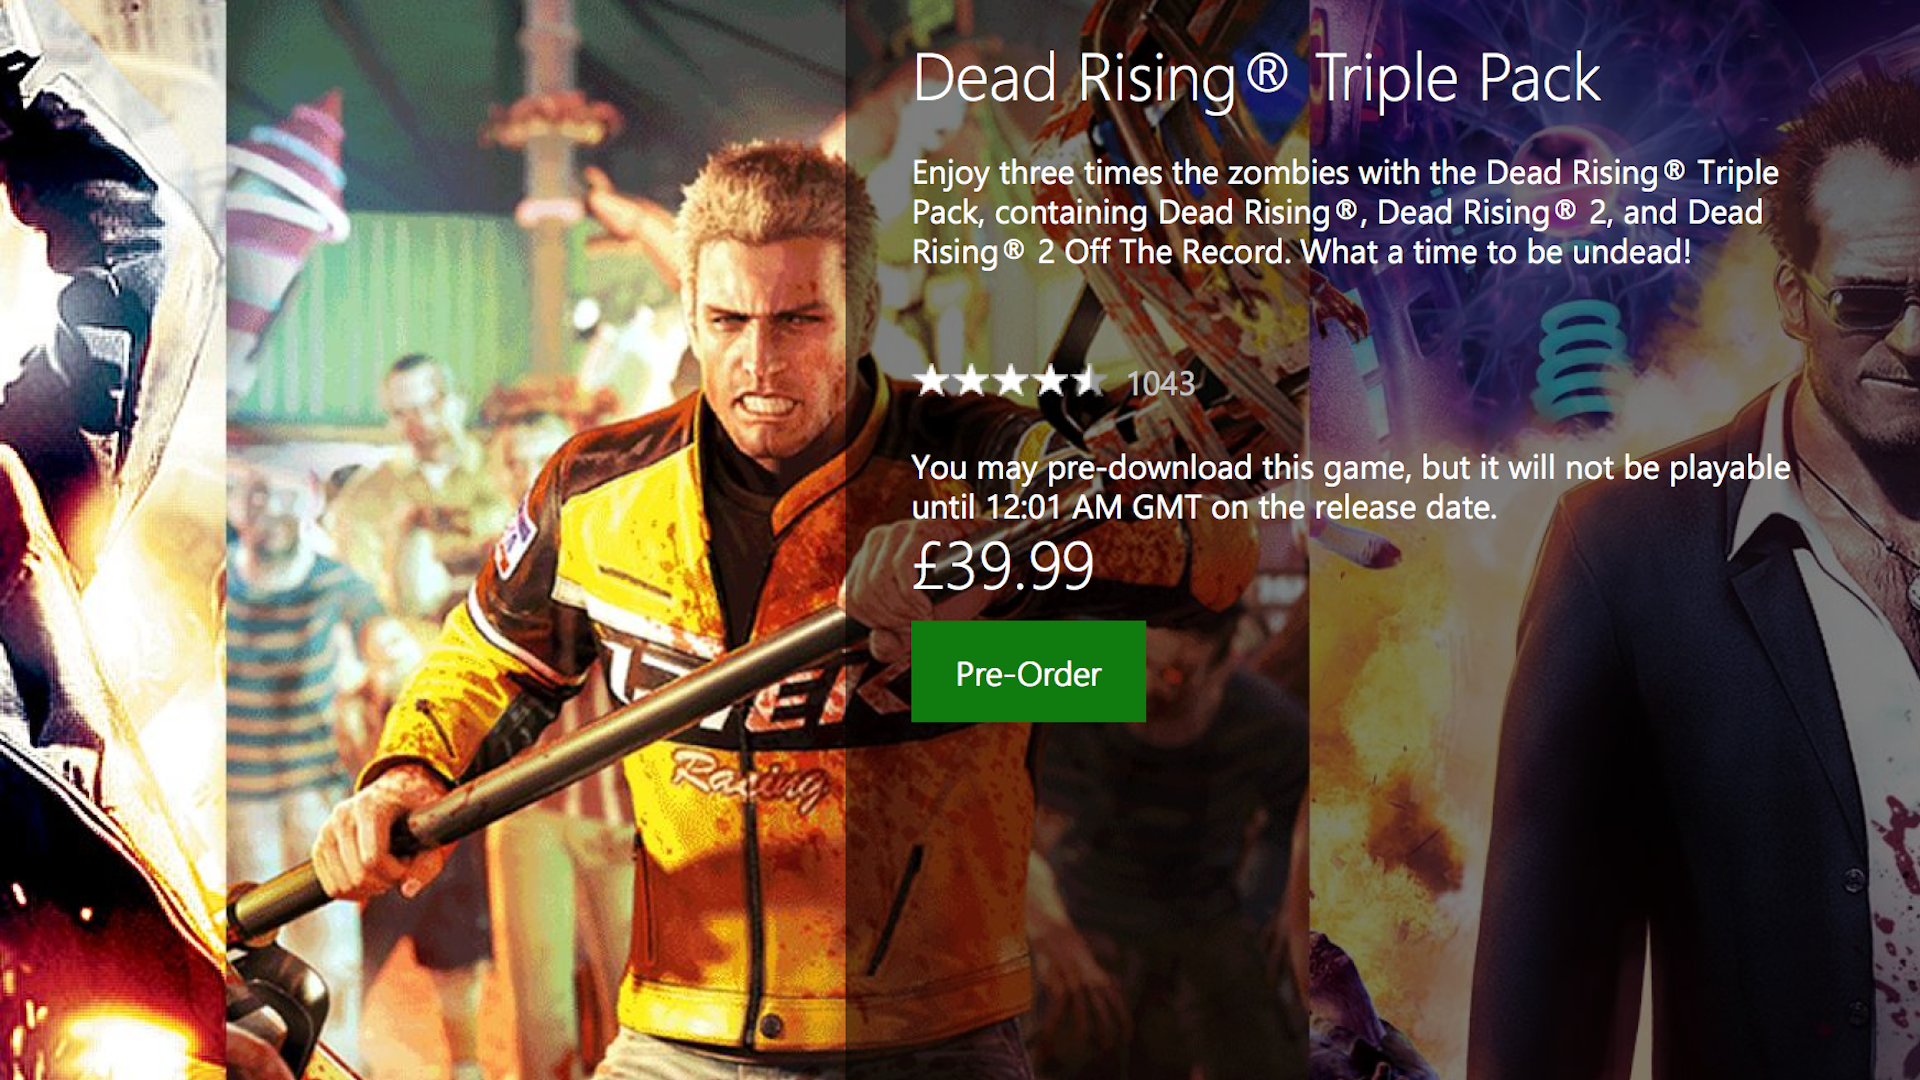 Dead Rising Collection Price.png